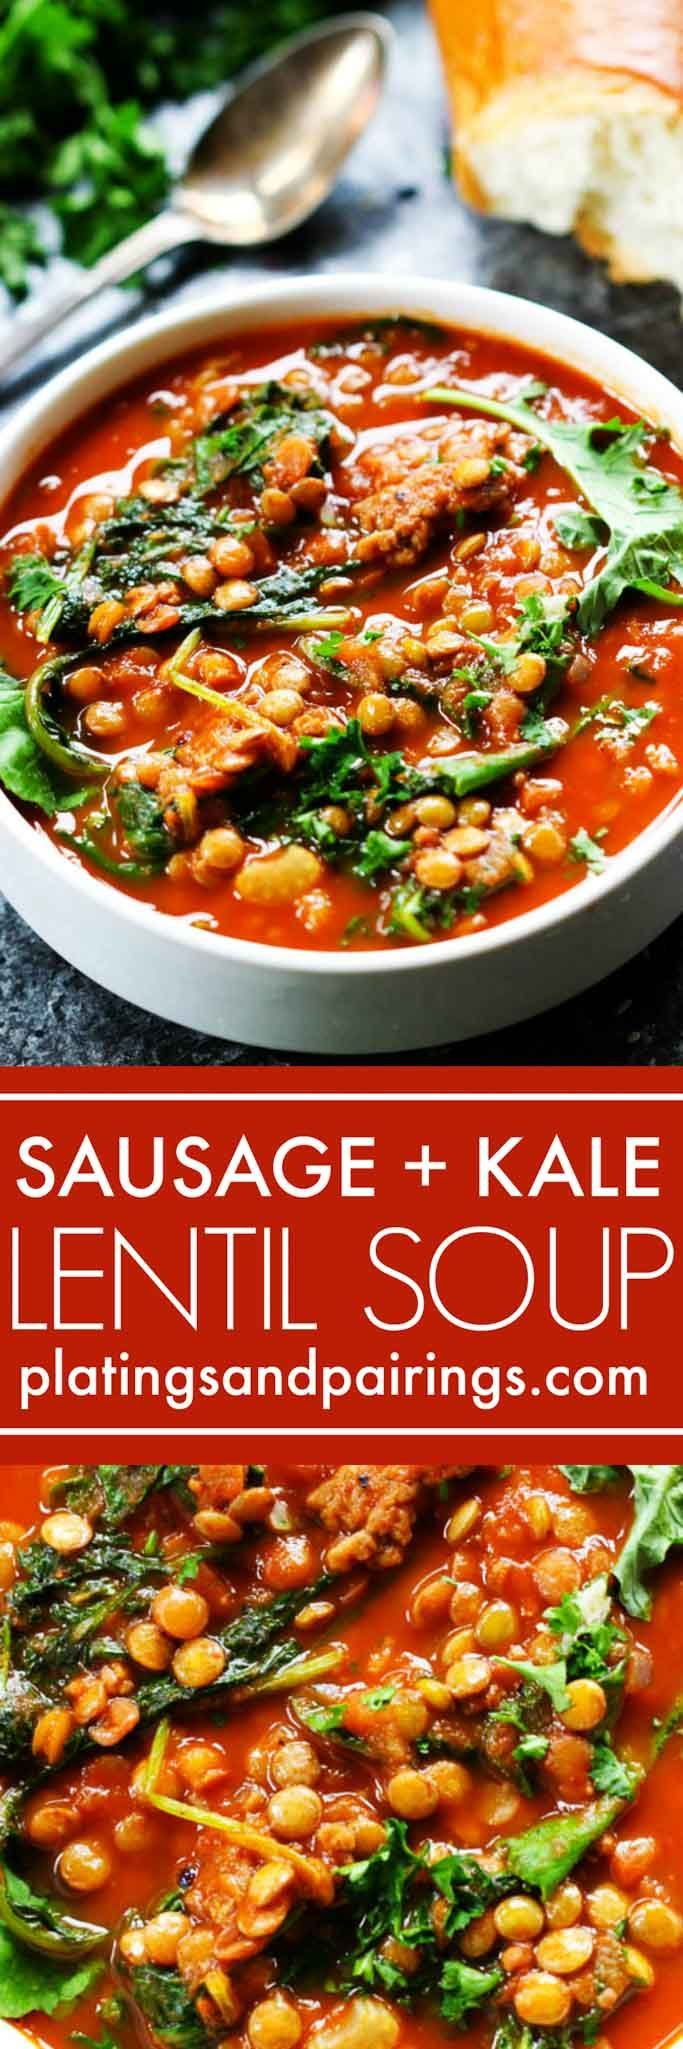 This Hearty Sausage, Kale & Lentil Soup will warm you up and keep you wanting more! | http://platingsandpairings.com